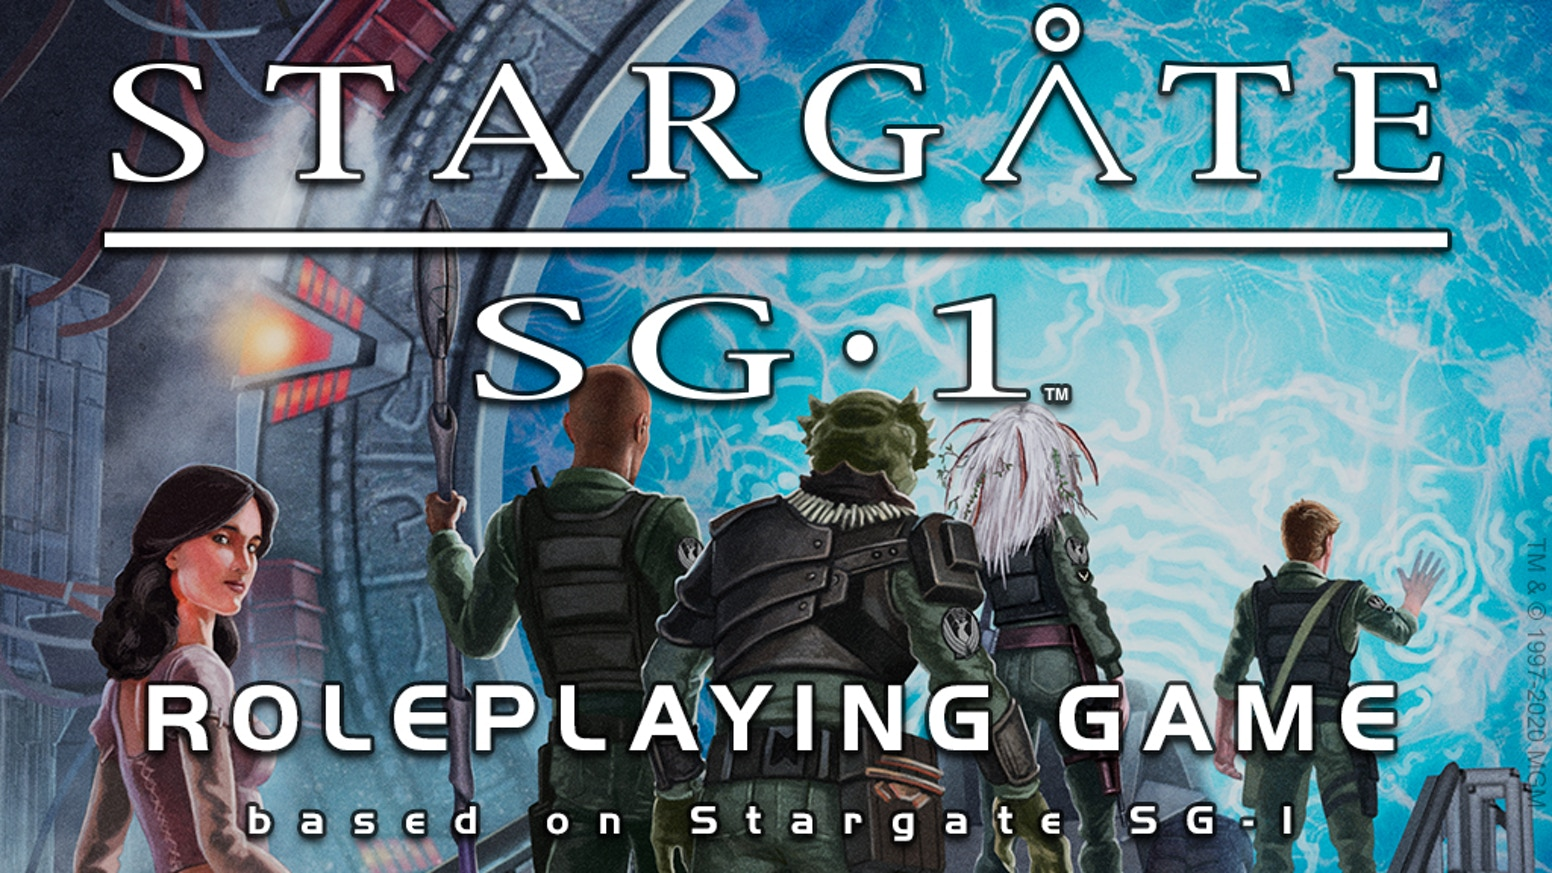 Stargate SG-1 Roleplaying Game is a sci-fi tabletop game where you assume the role of a member of Stargate Command on a Stargate Team.